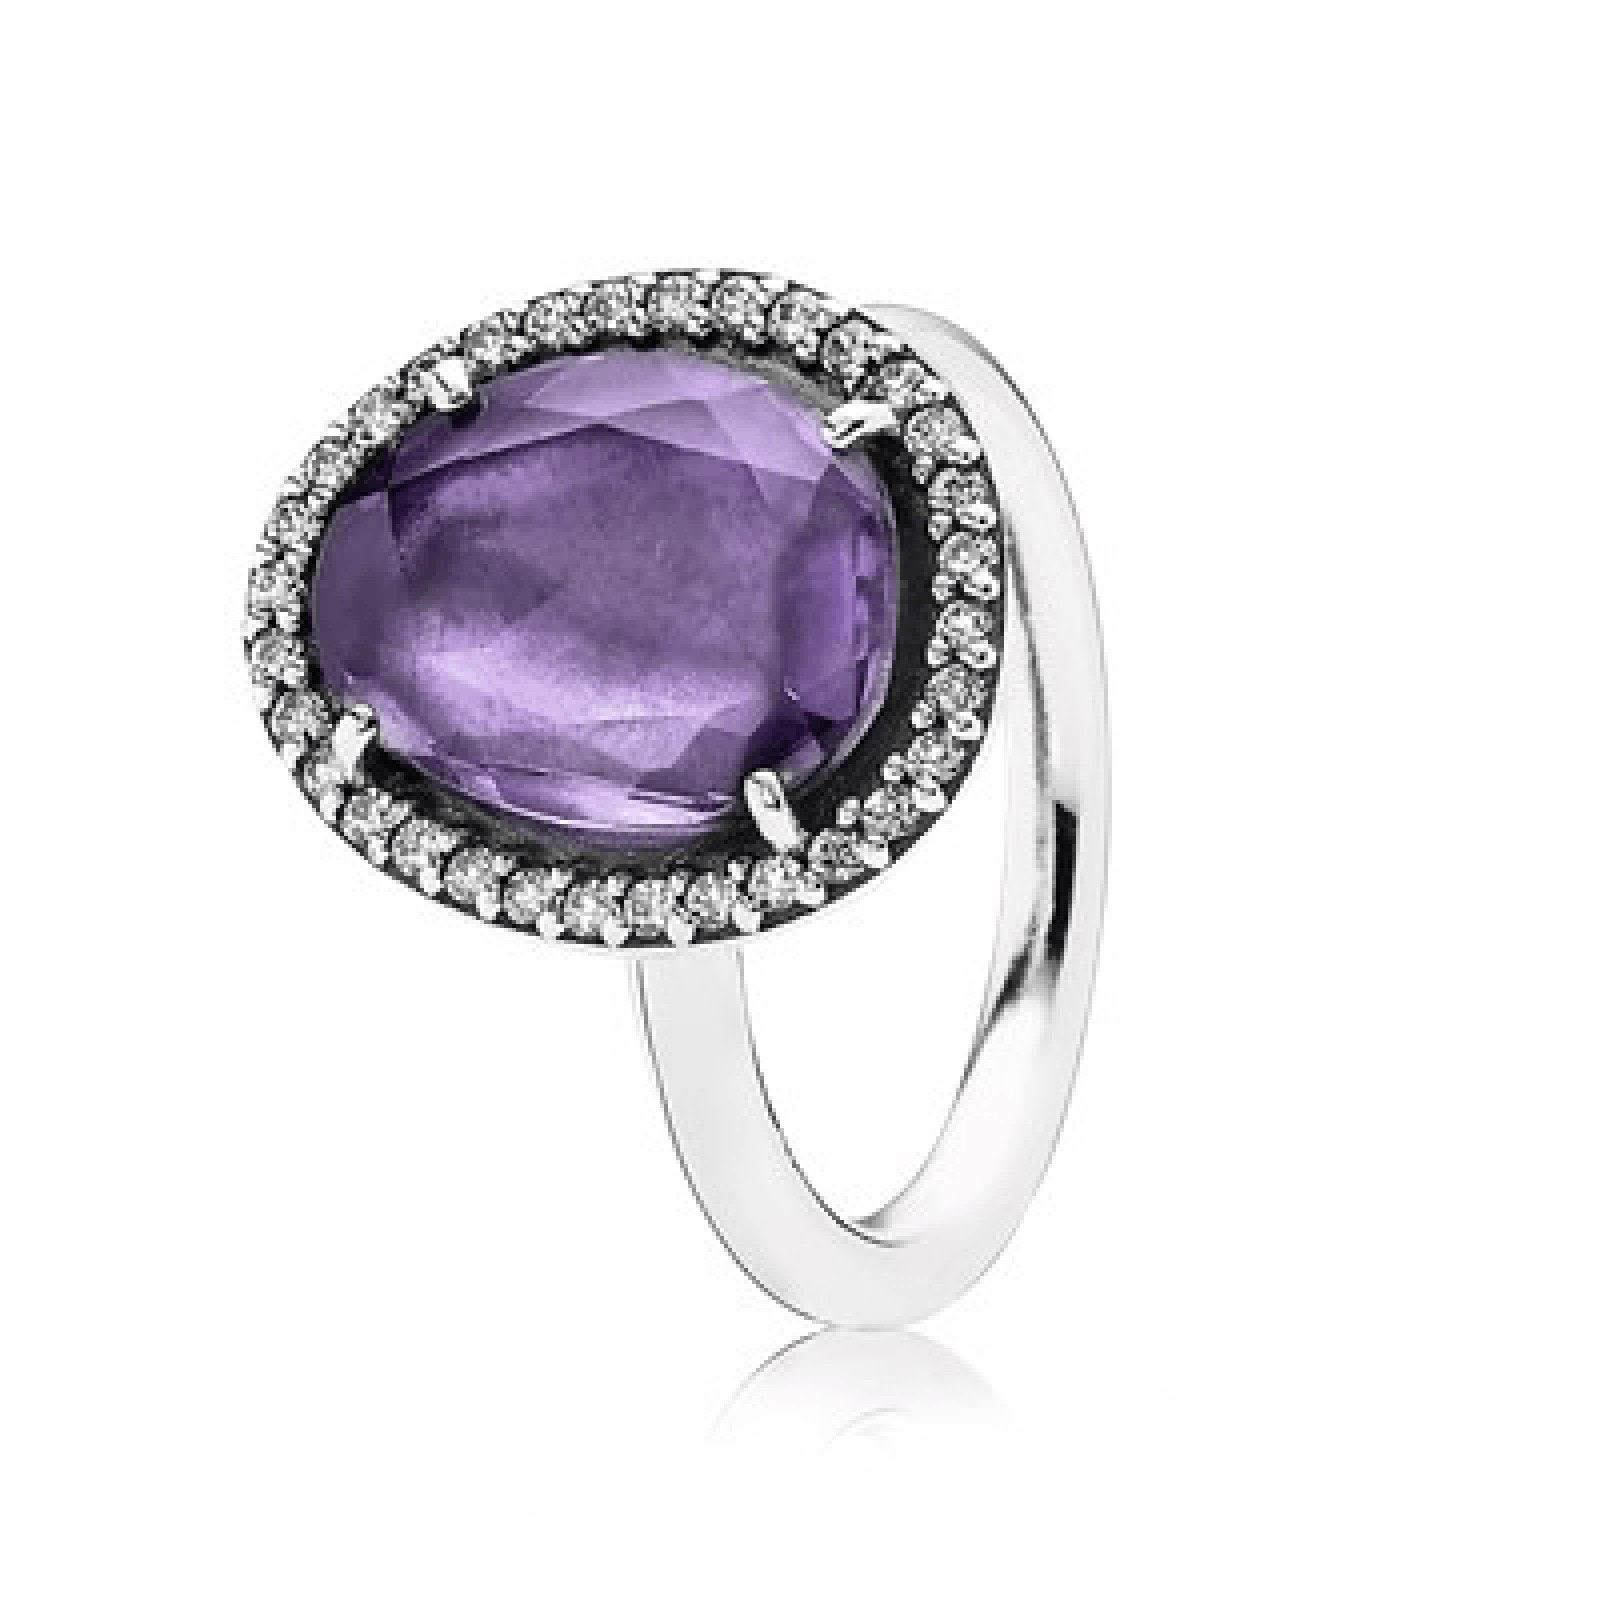 9f6cd66d4 Pandora Glamorous Legacy Ring in Sterling Silver Set with Purple Amethyst  and Clear CZ Rings Pandora